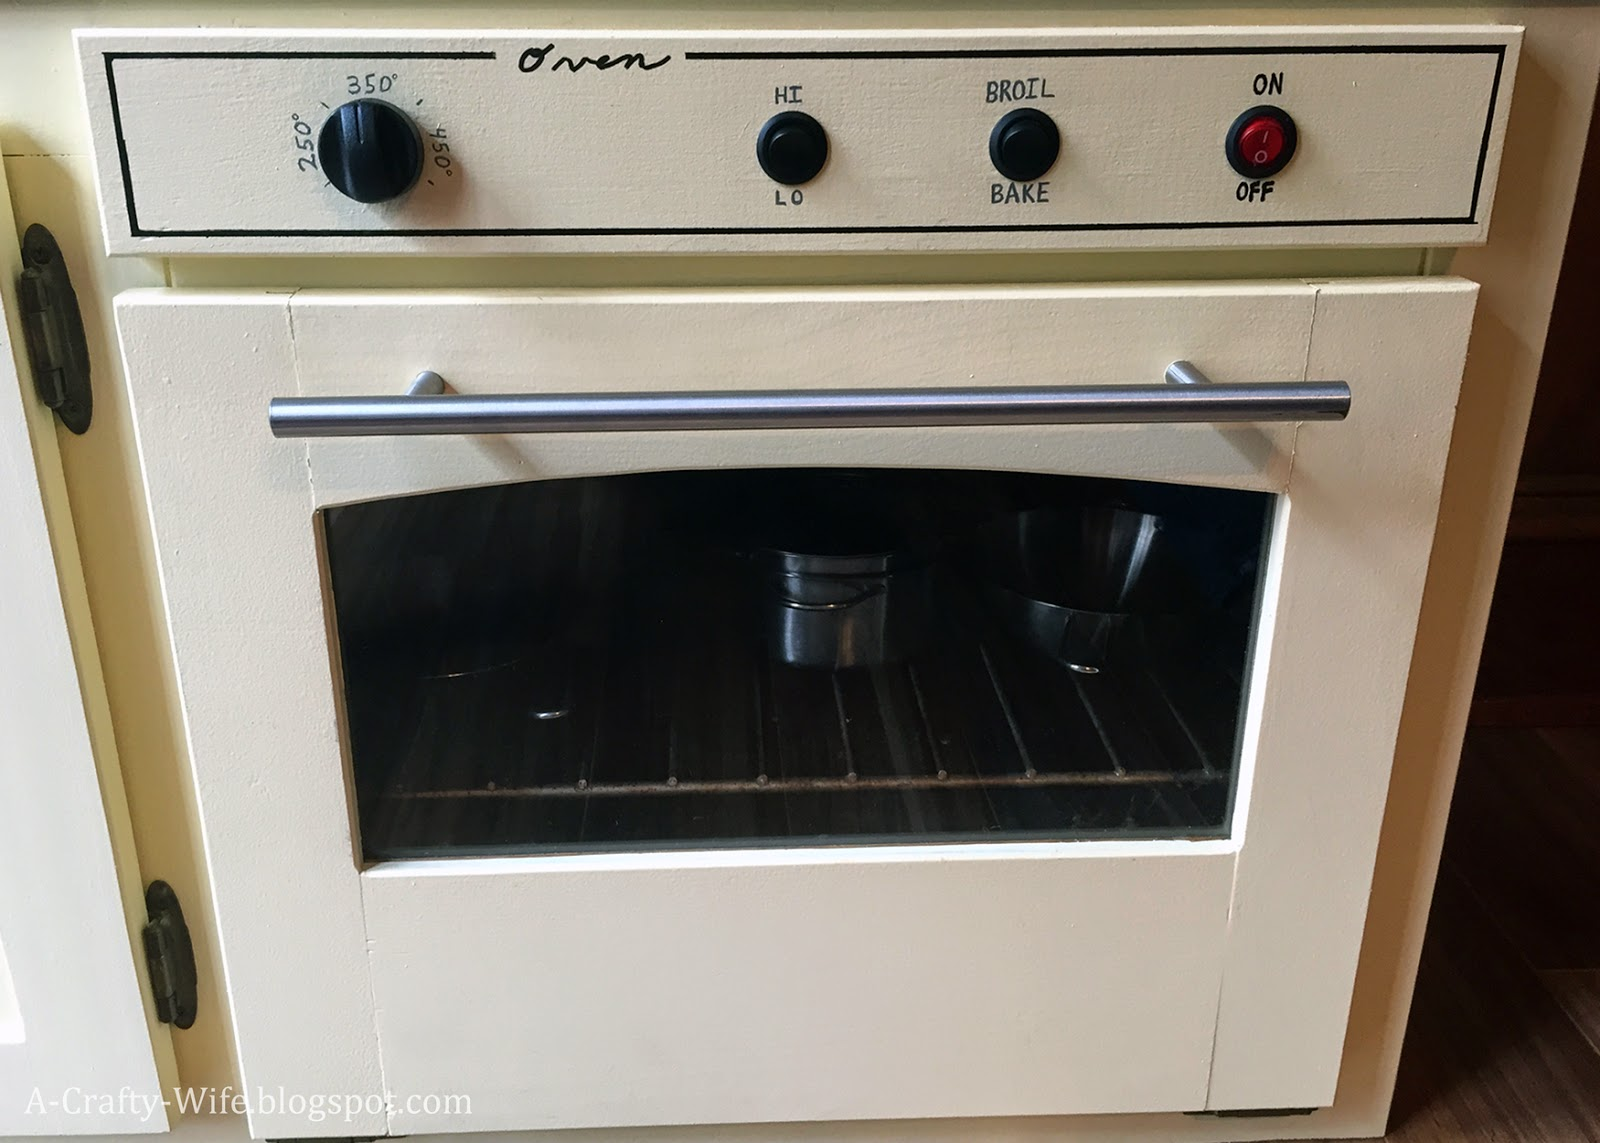 Use space heater buttons to make oven controls for toddler play kitchen from old cabinet.